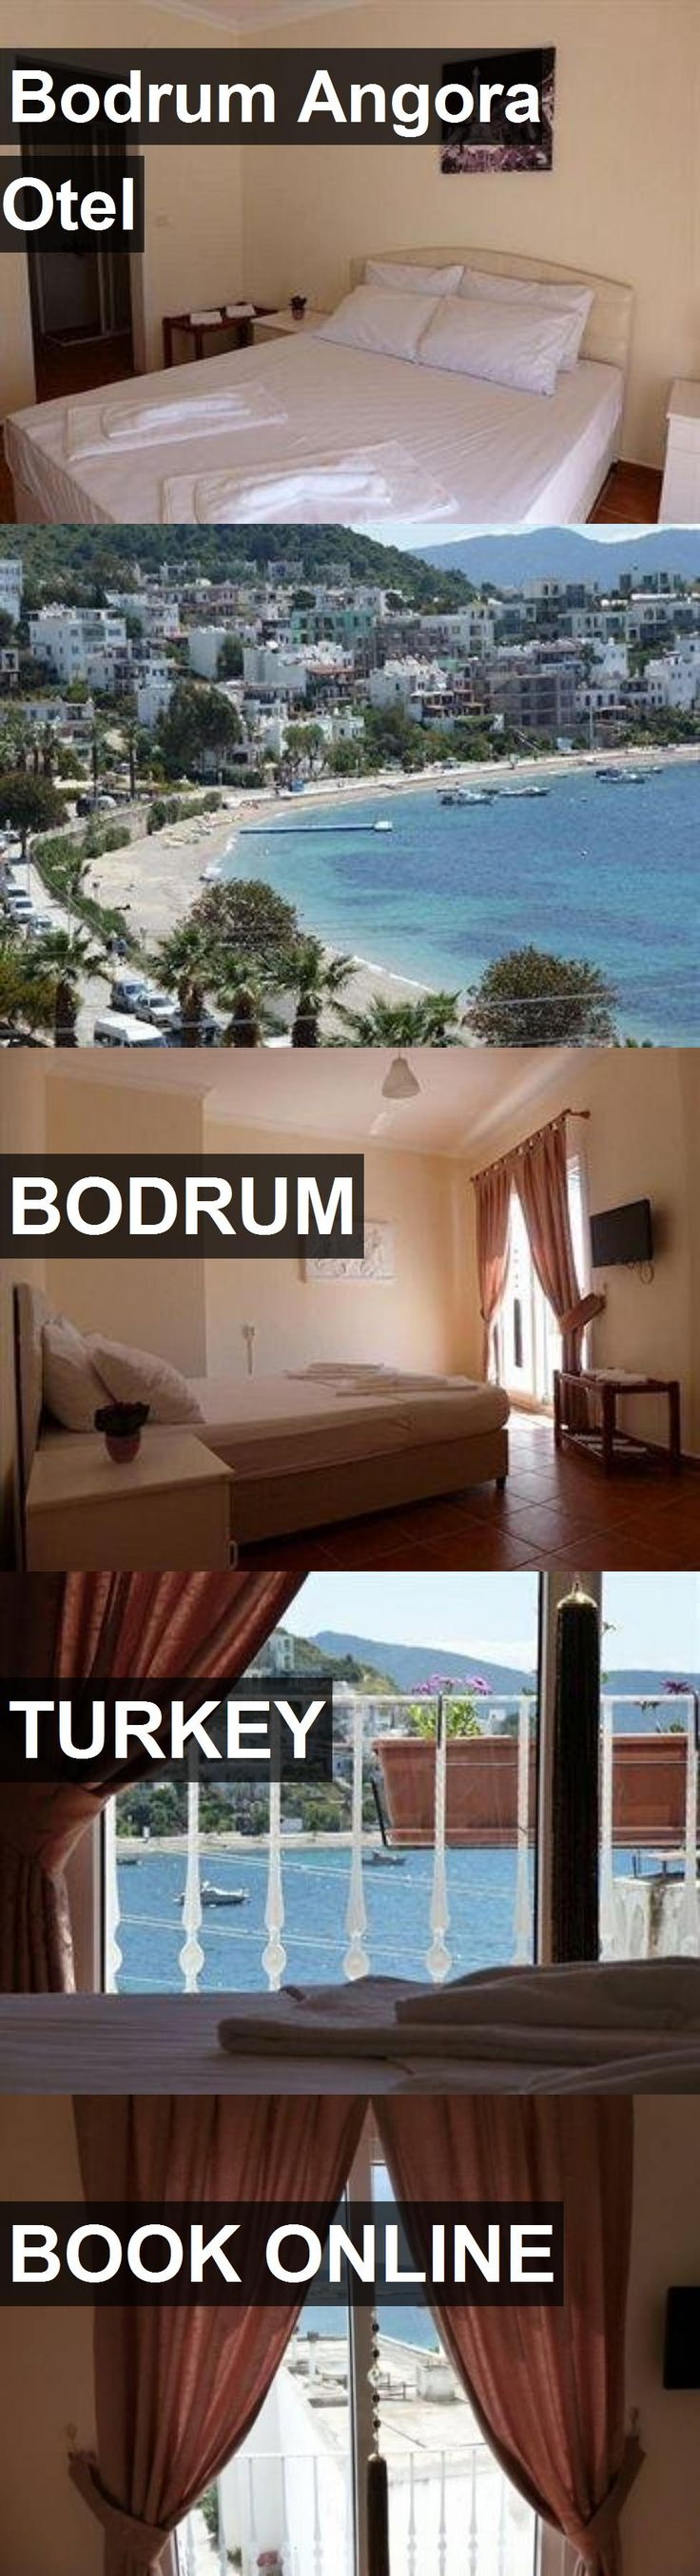 Hotel Bodrum Angora Otel in Bodrum, Turkey. For more information, photos, reviews and best prices please follow the link. #Turkey #Bodrum #travel #vacation #hotel